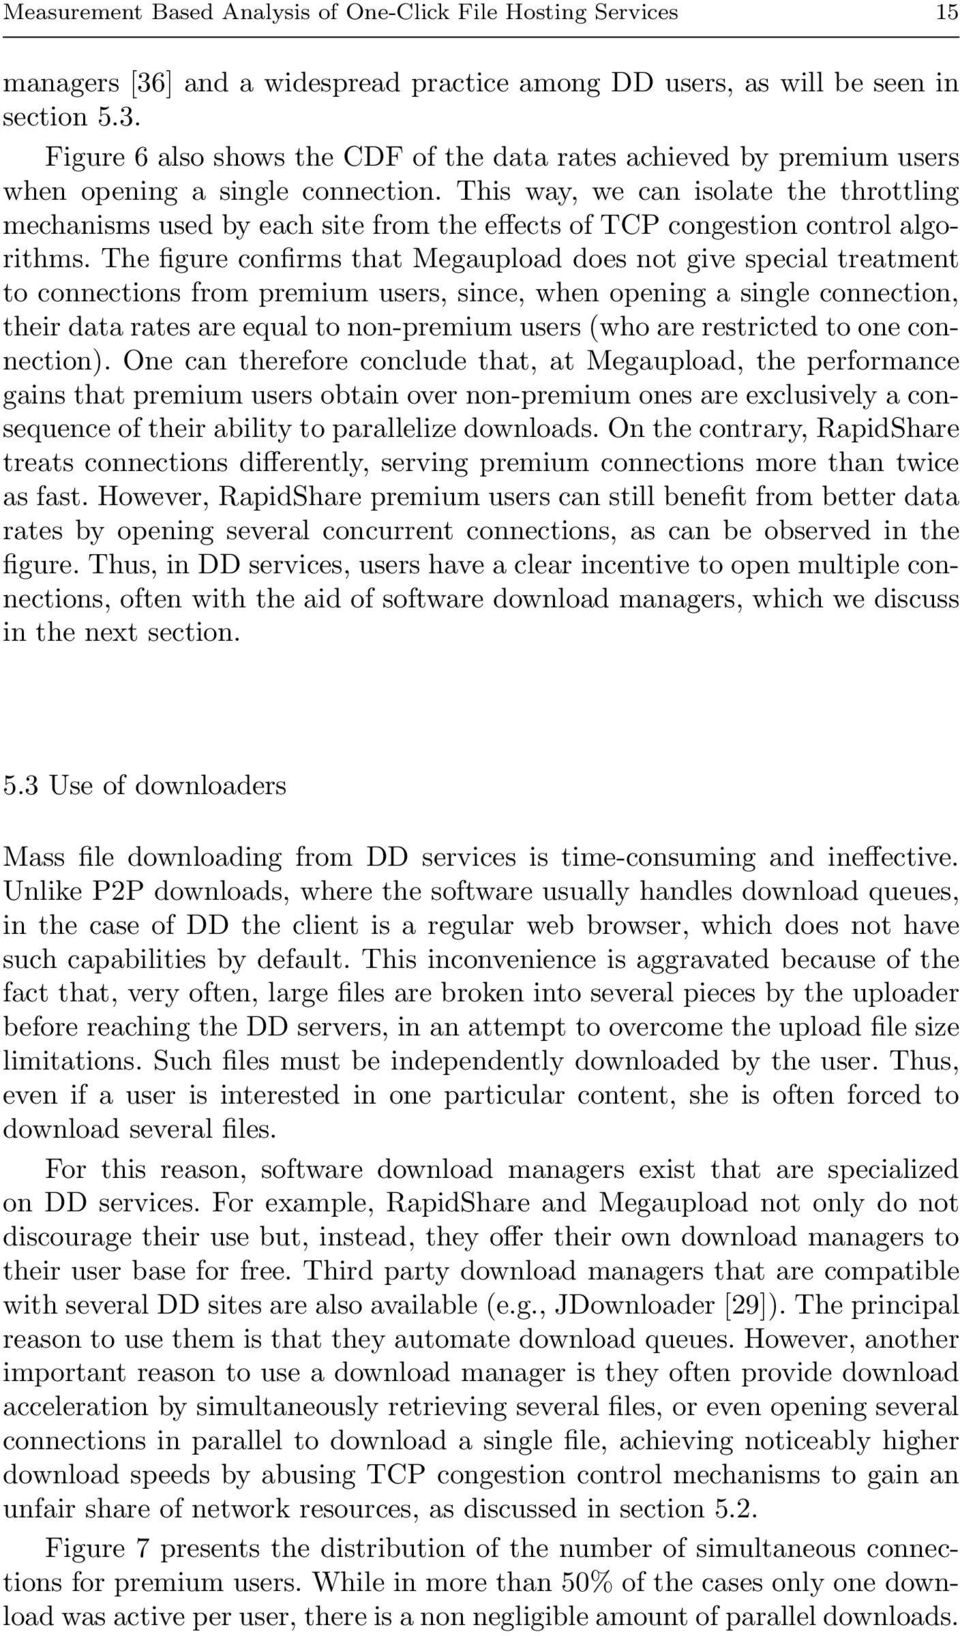 The figure confirms that Megaupload does not give special treatment to connections from premium users, since, when opening a single connection, their data rates are equal to non-premium users (who